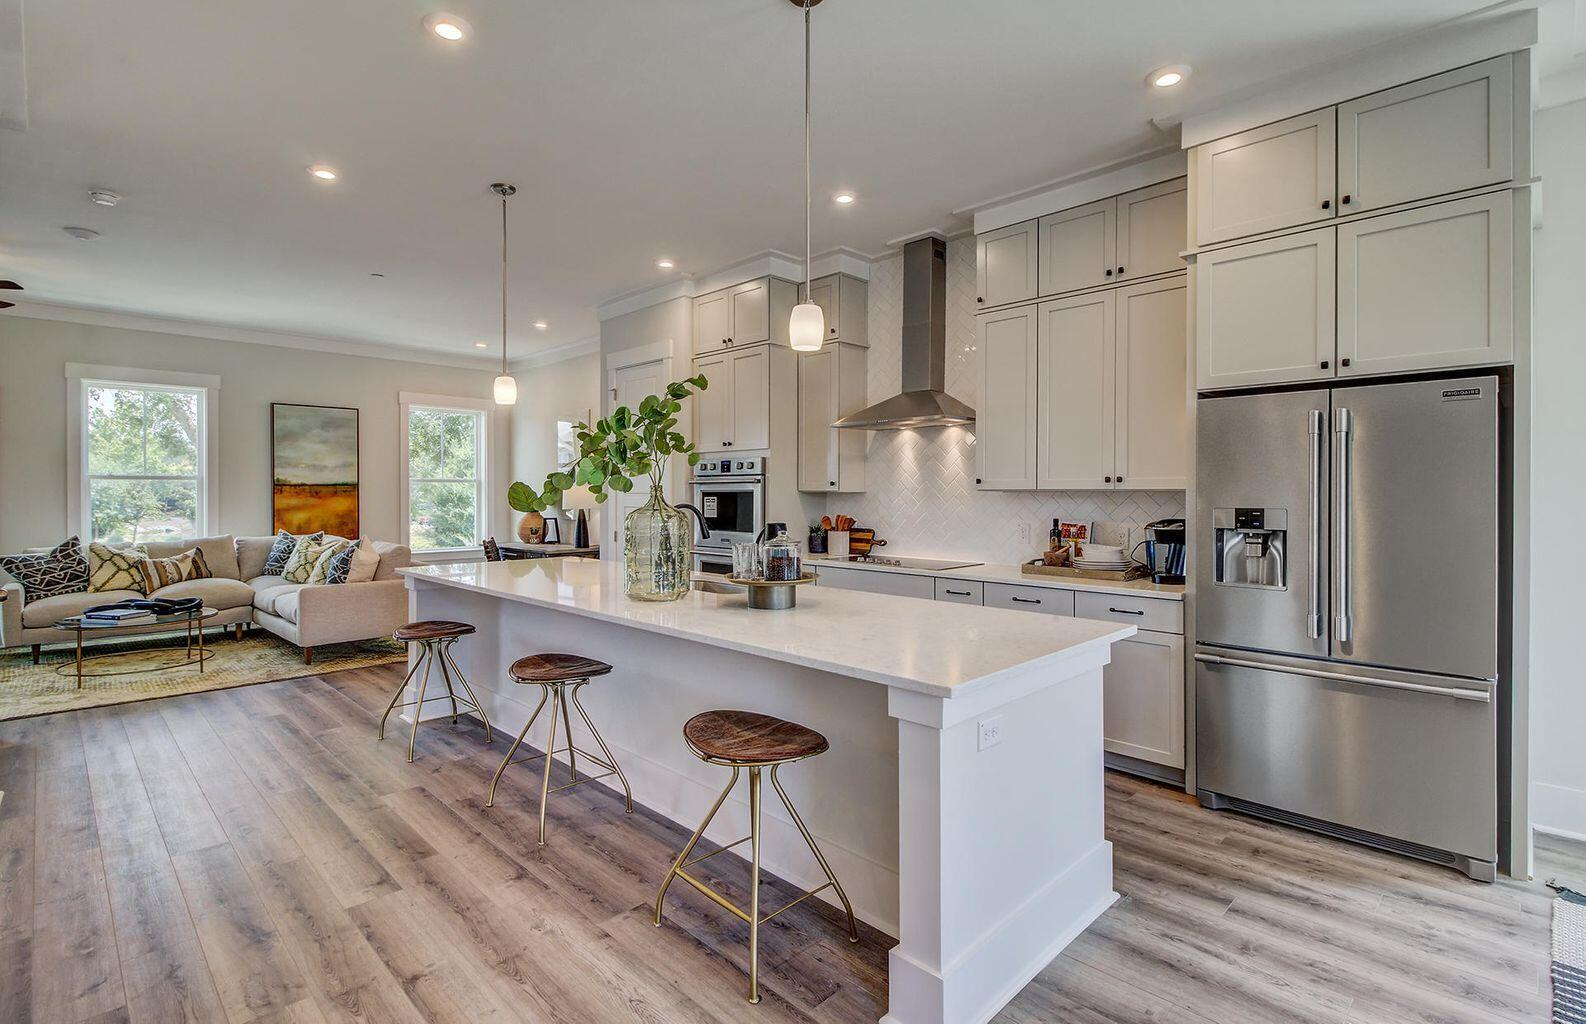 The Cove at Folly Homes For Sale - 2139 Tides End, Charleston, SC - 52